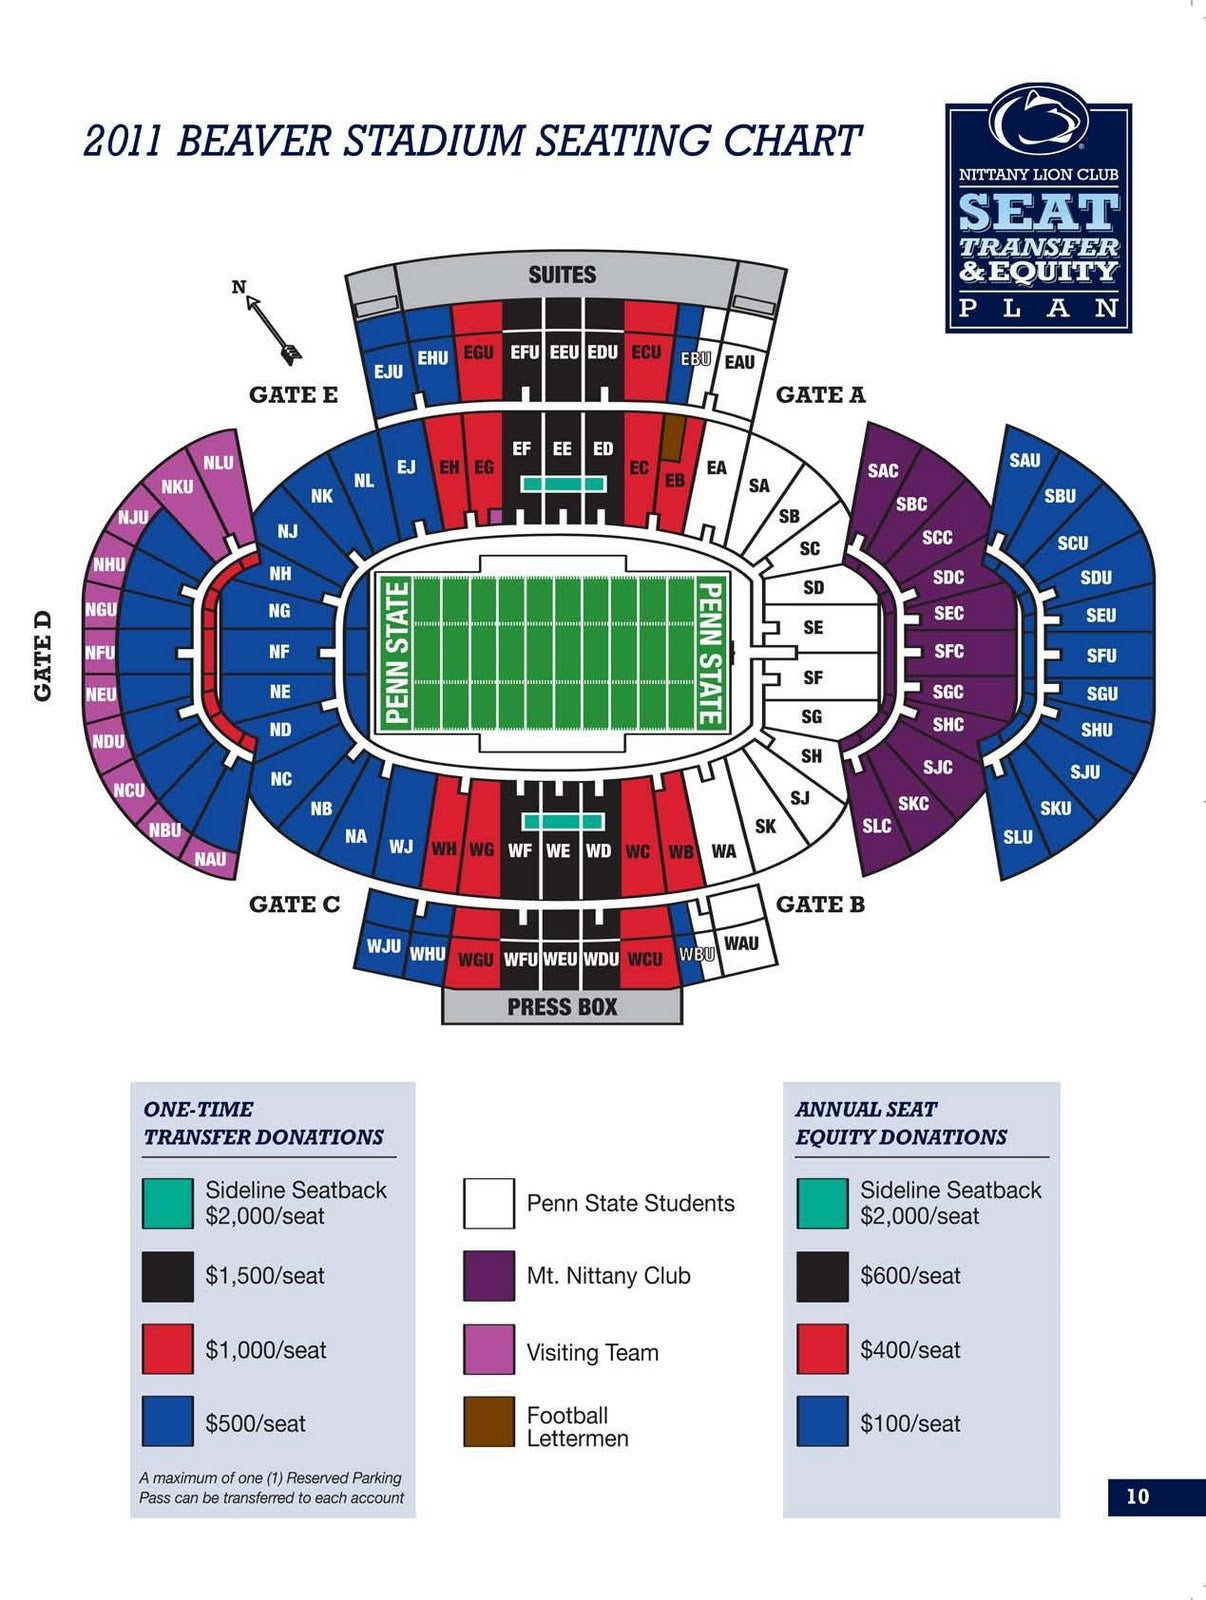 Visitor sections at beaver stadium